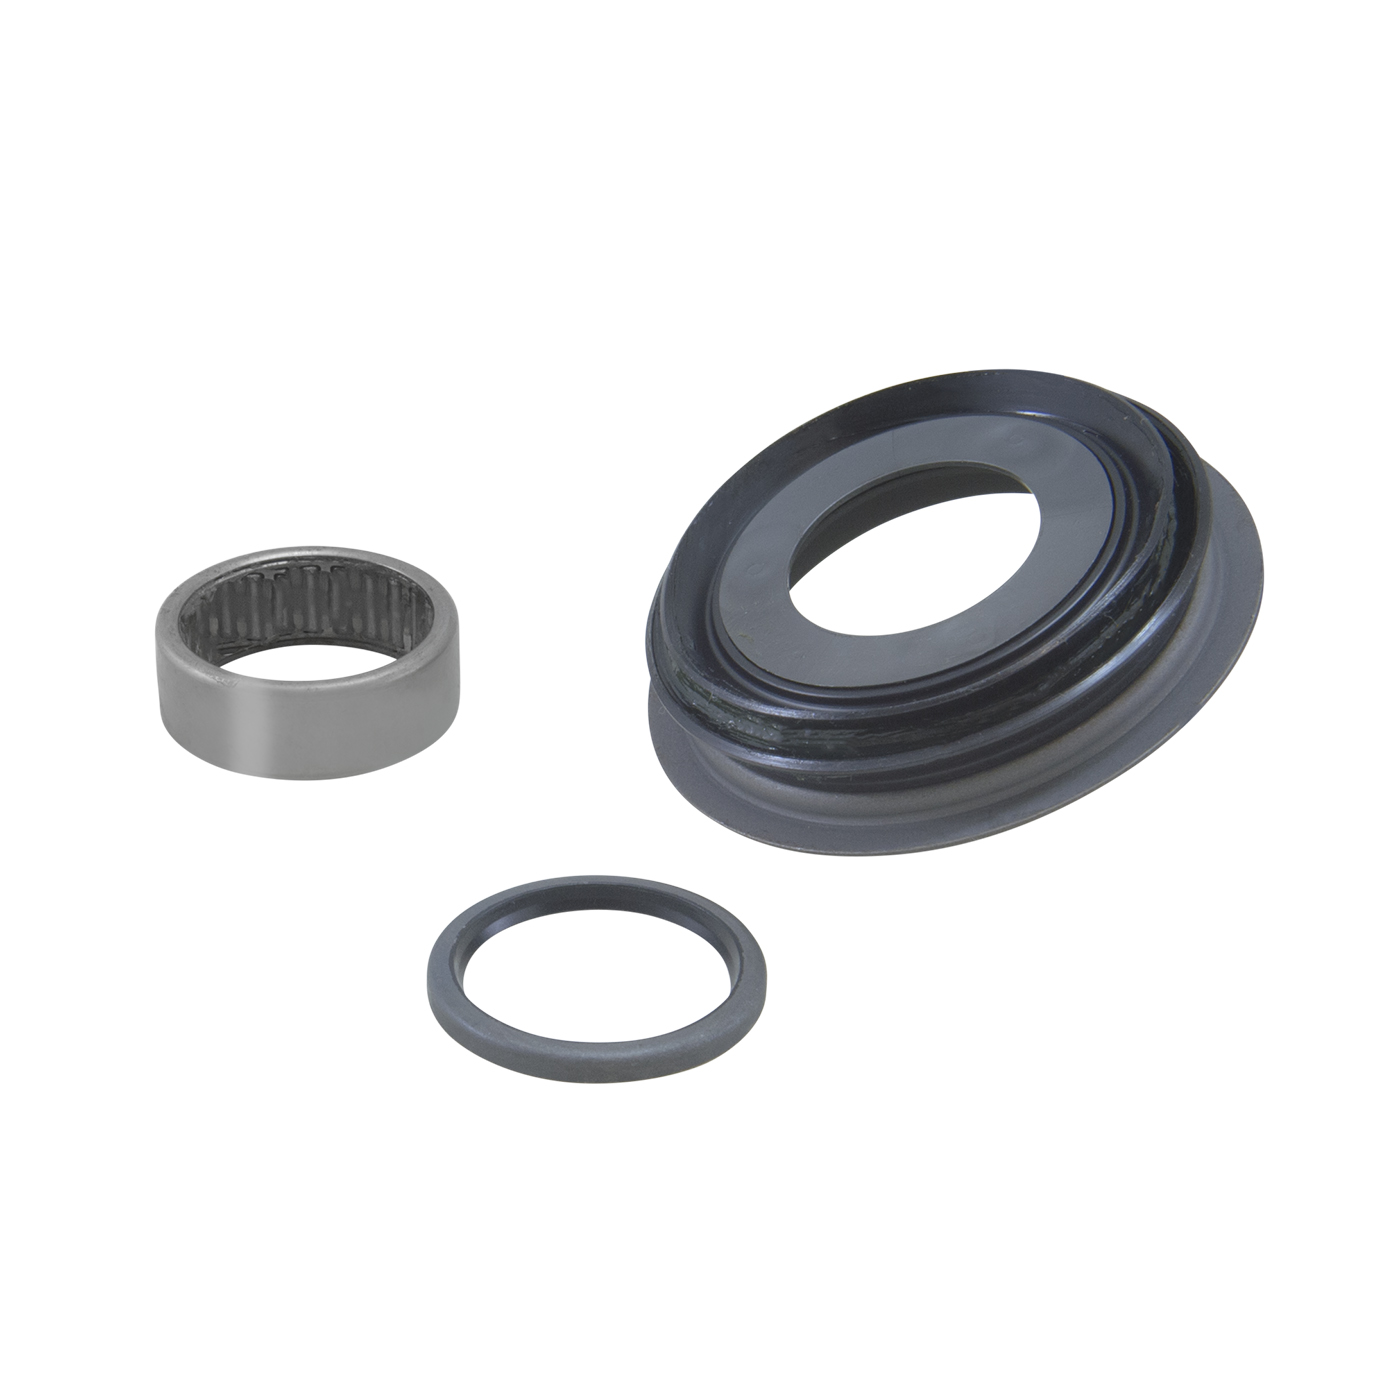 YSPSP-026 - Spindle bearing & seal kit for Dana 28